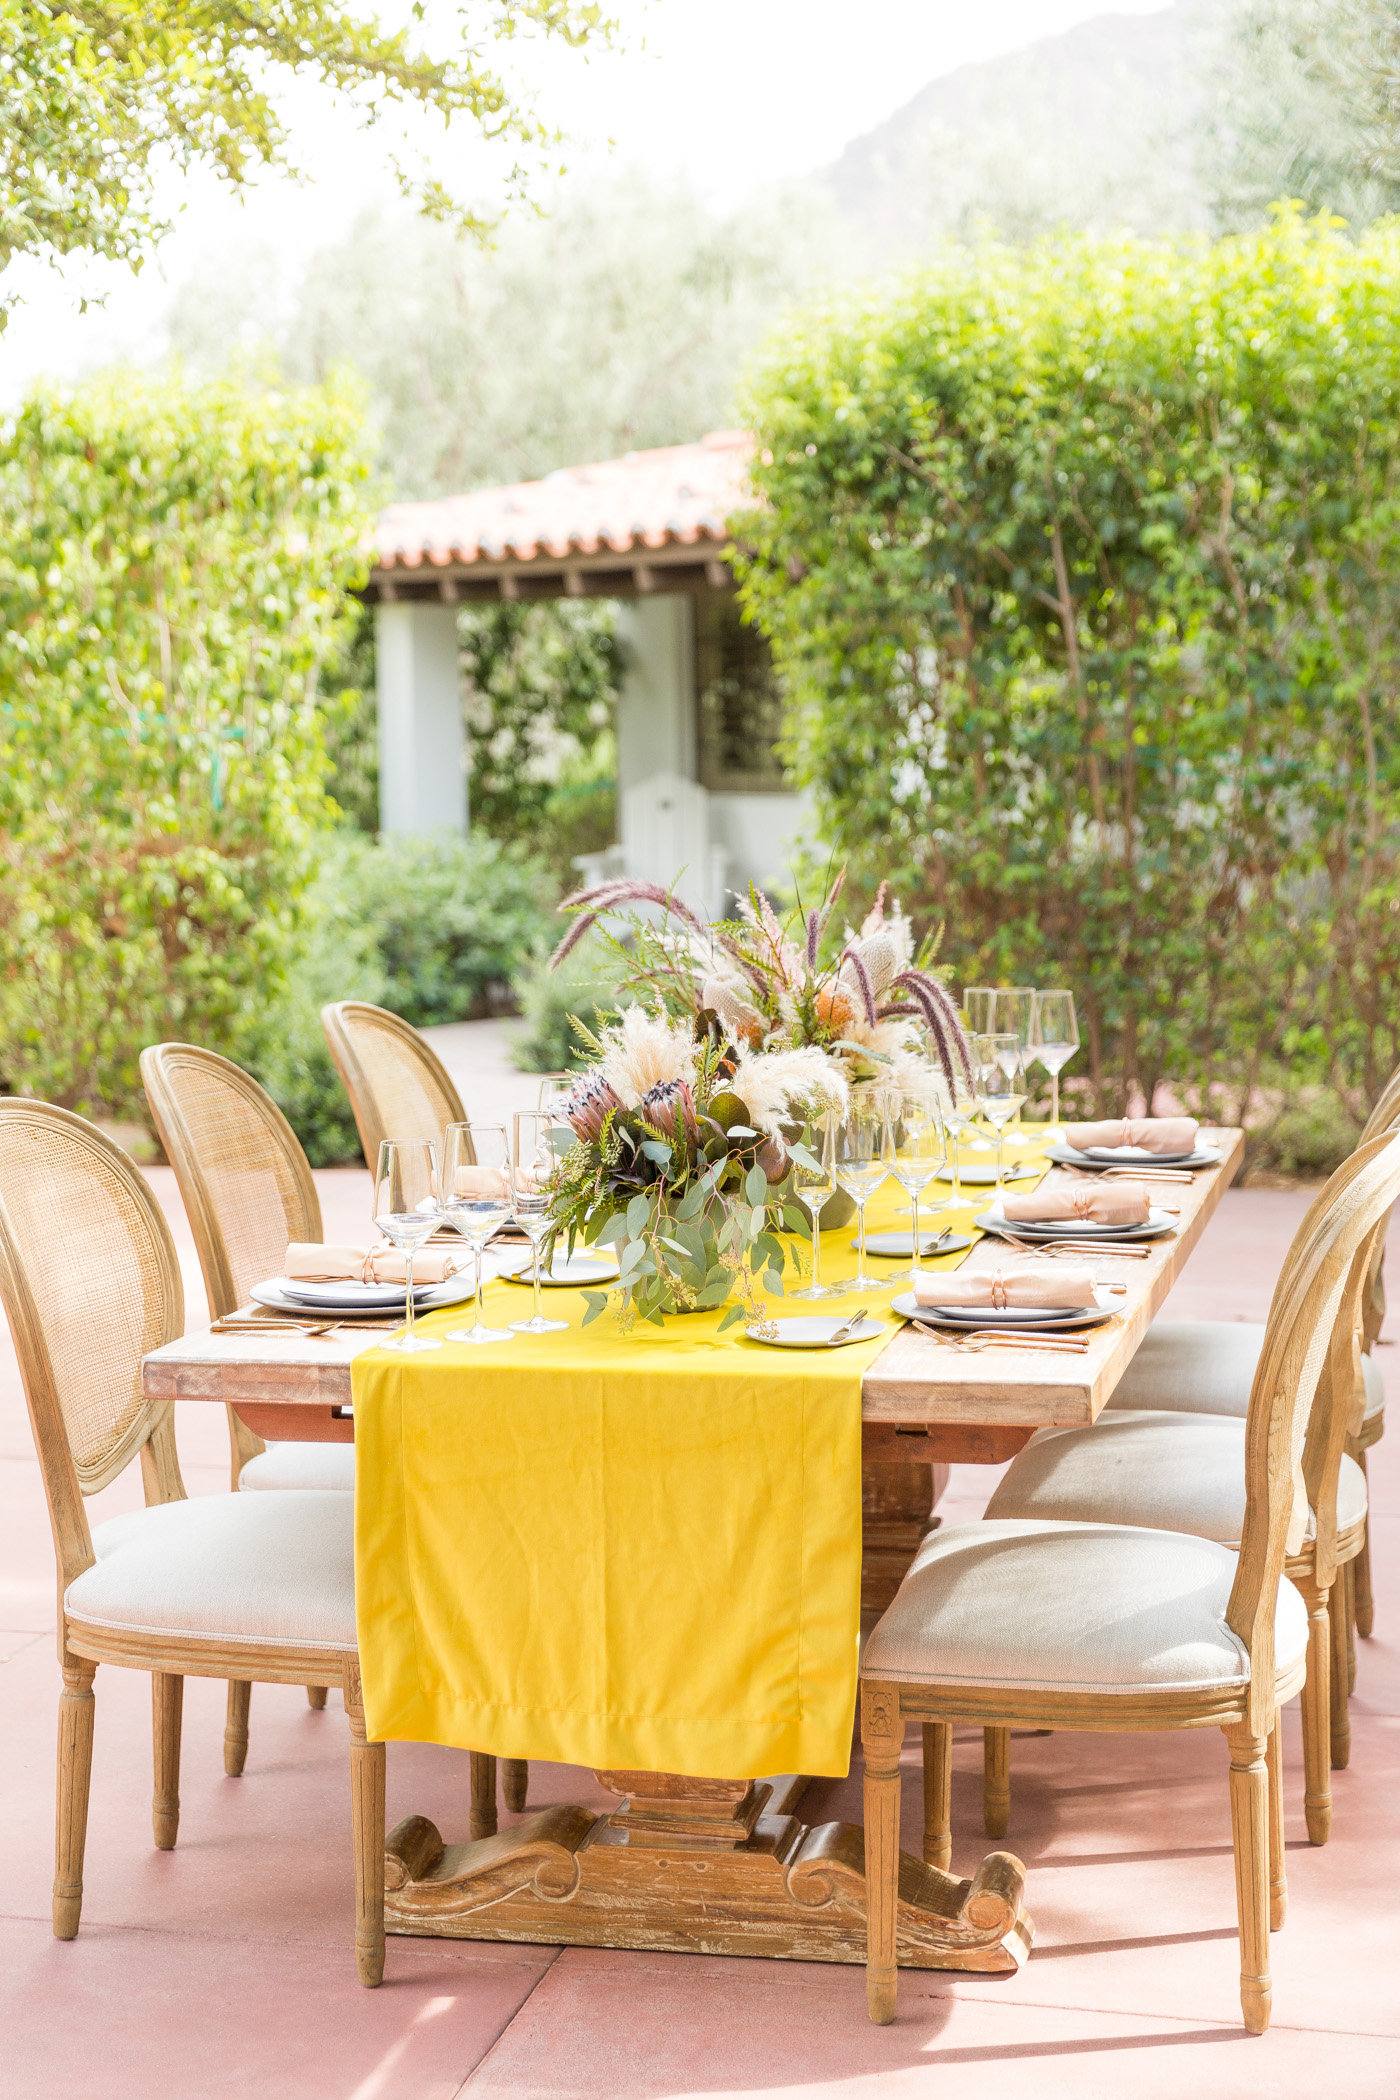 modern wedding inspiration - photo by Karlee K Photography http://ruffledblog.com/cheerful-desert-wedding-inspiration-with-bright-yellow